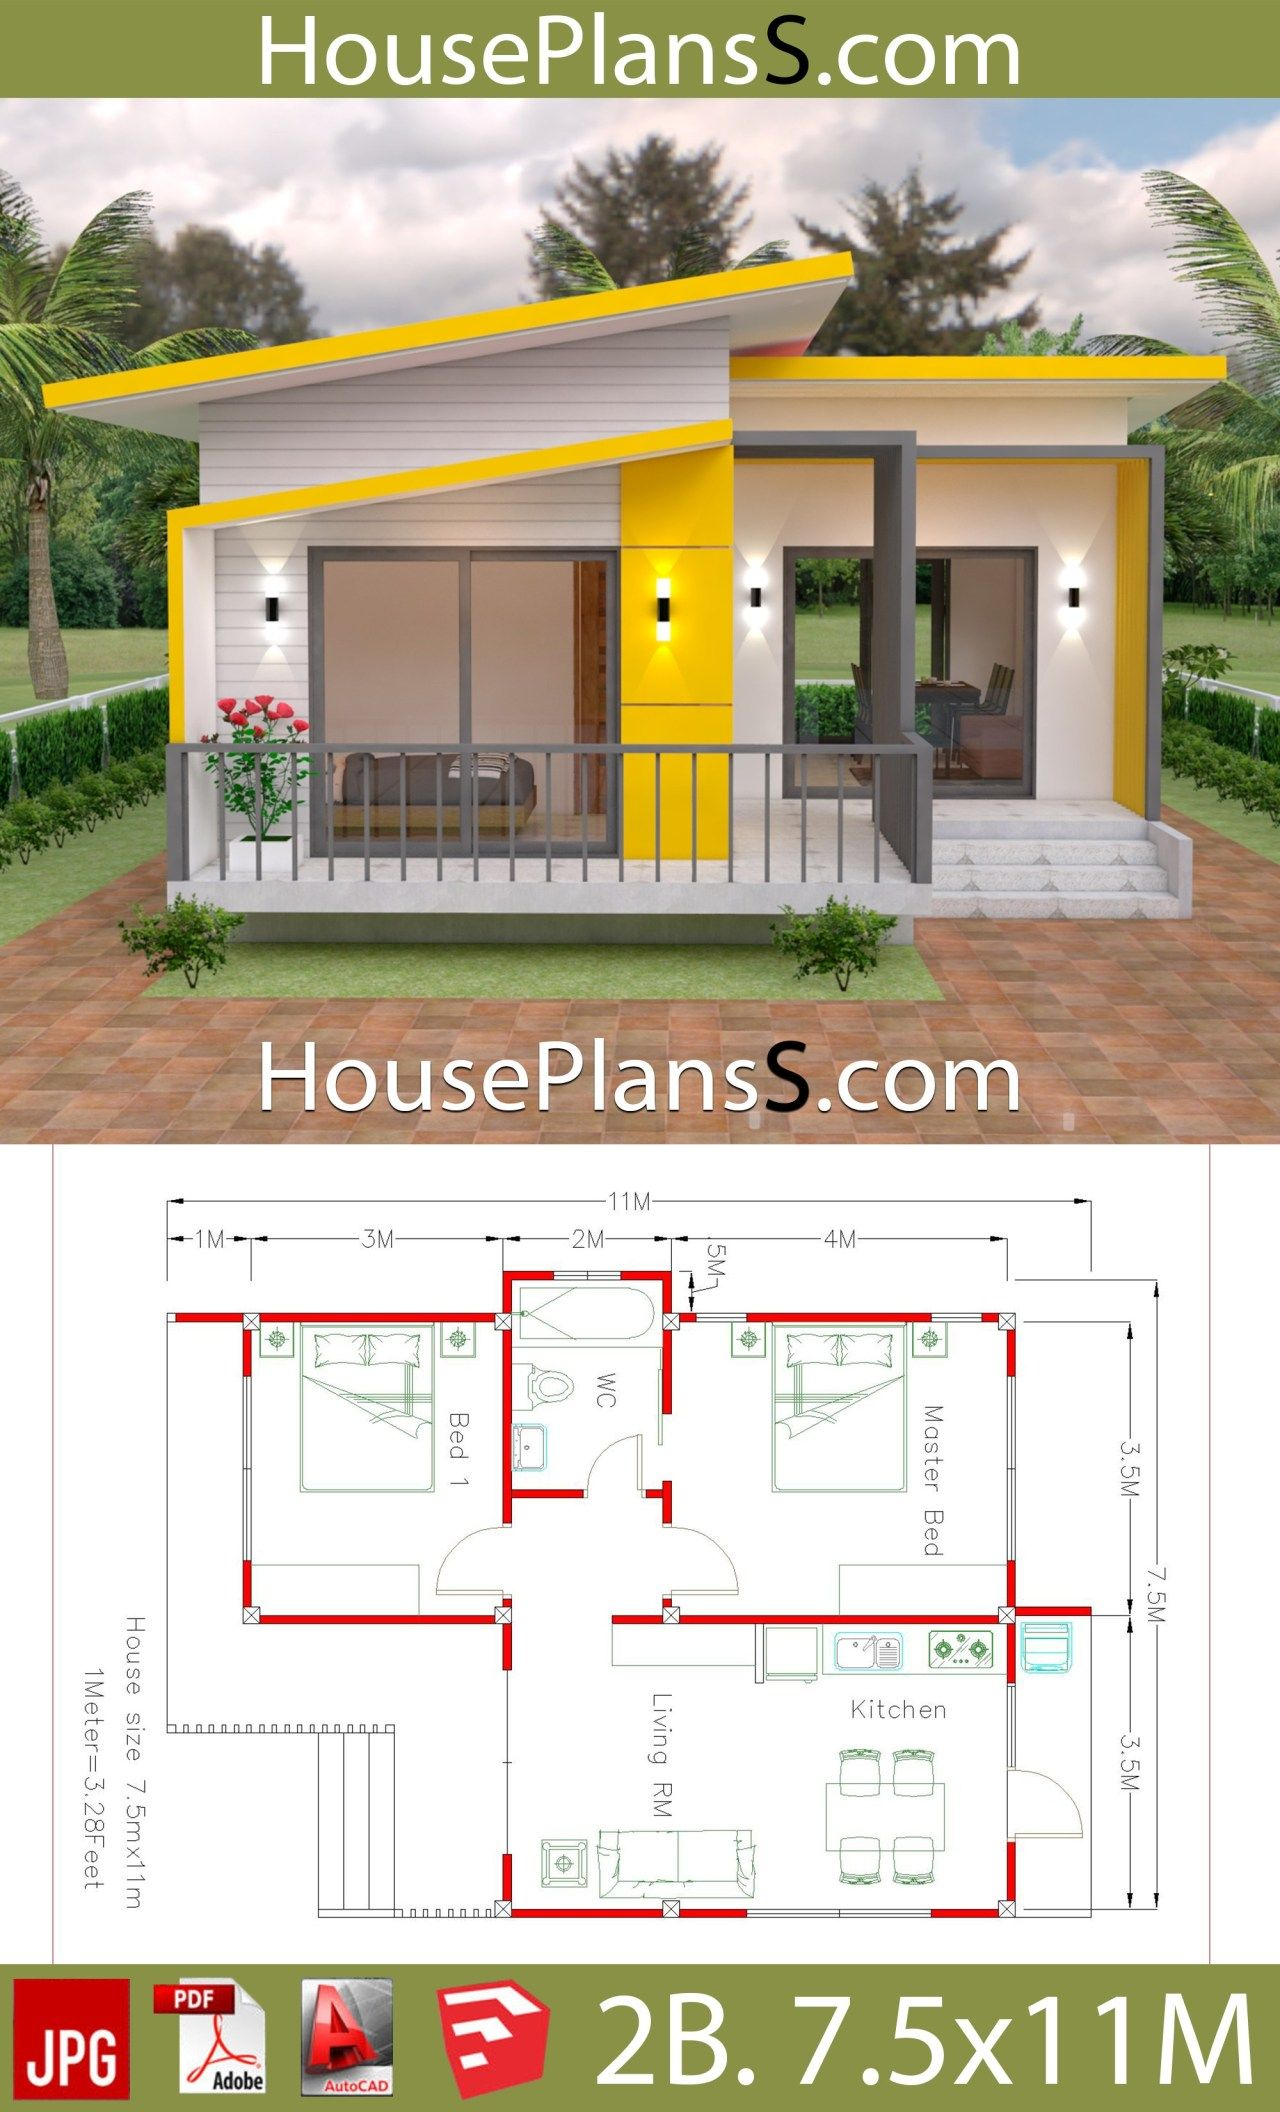 House Plans 7 5x11 With 2 Bedrooms Full Plans House Plans Sam House Plans Small House Design Small House Layout